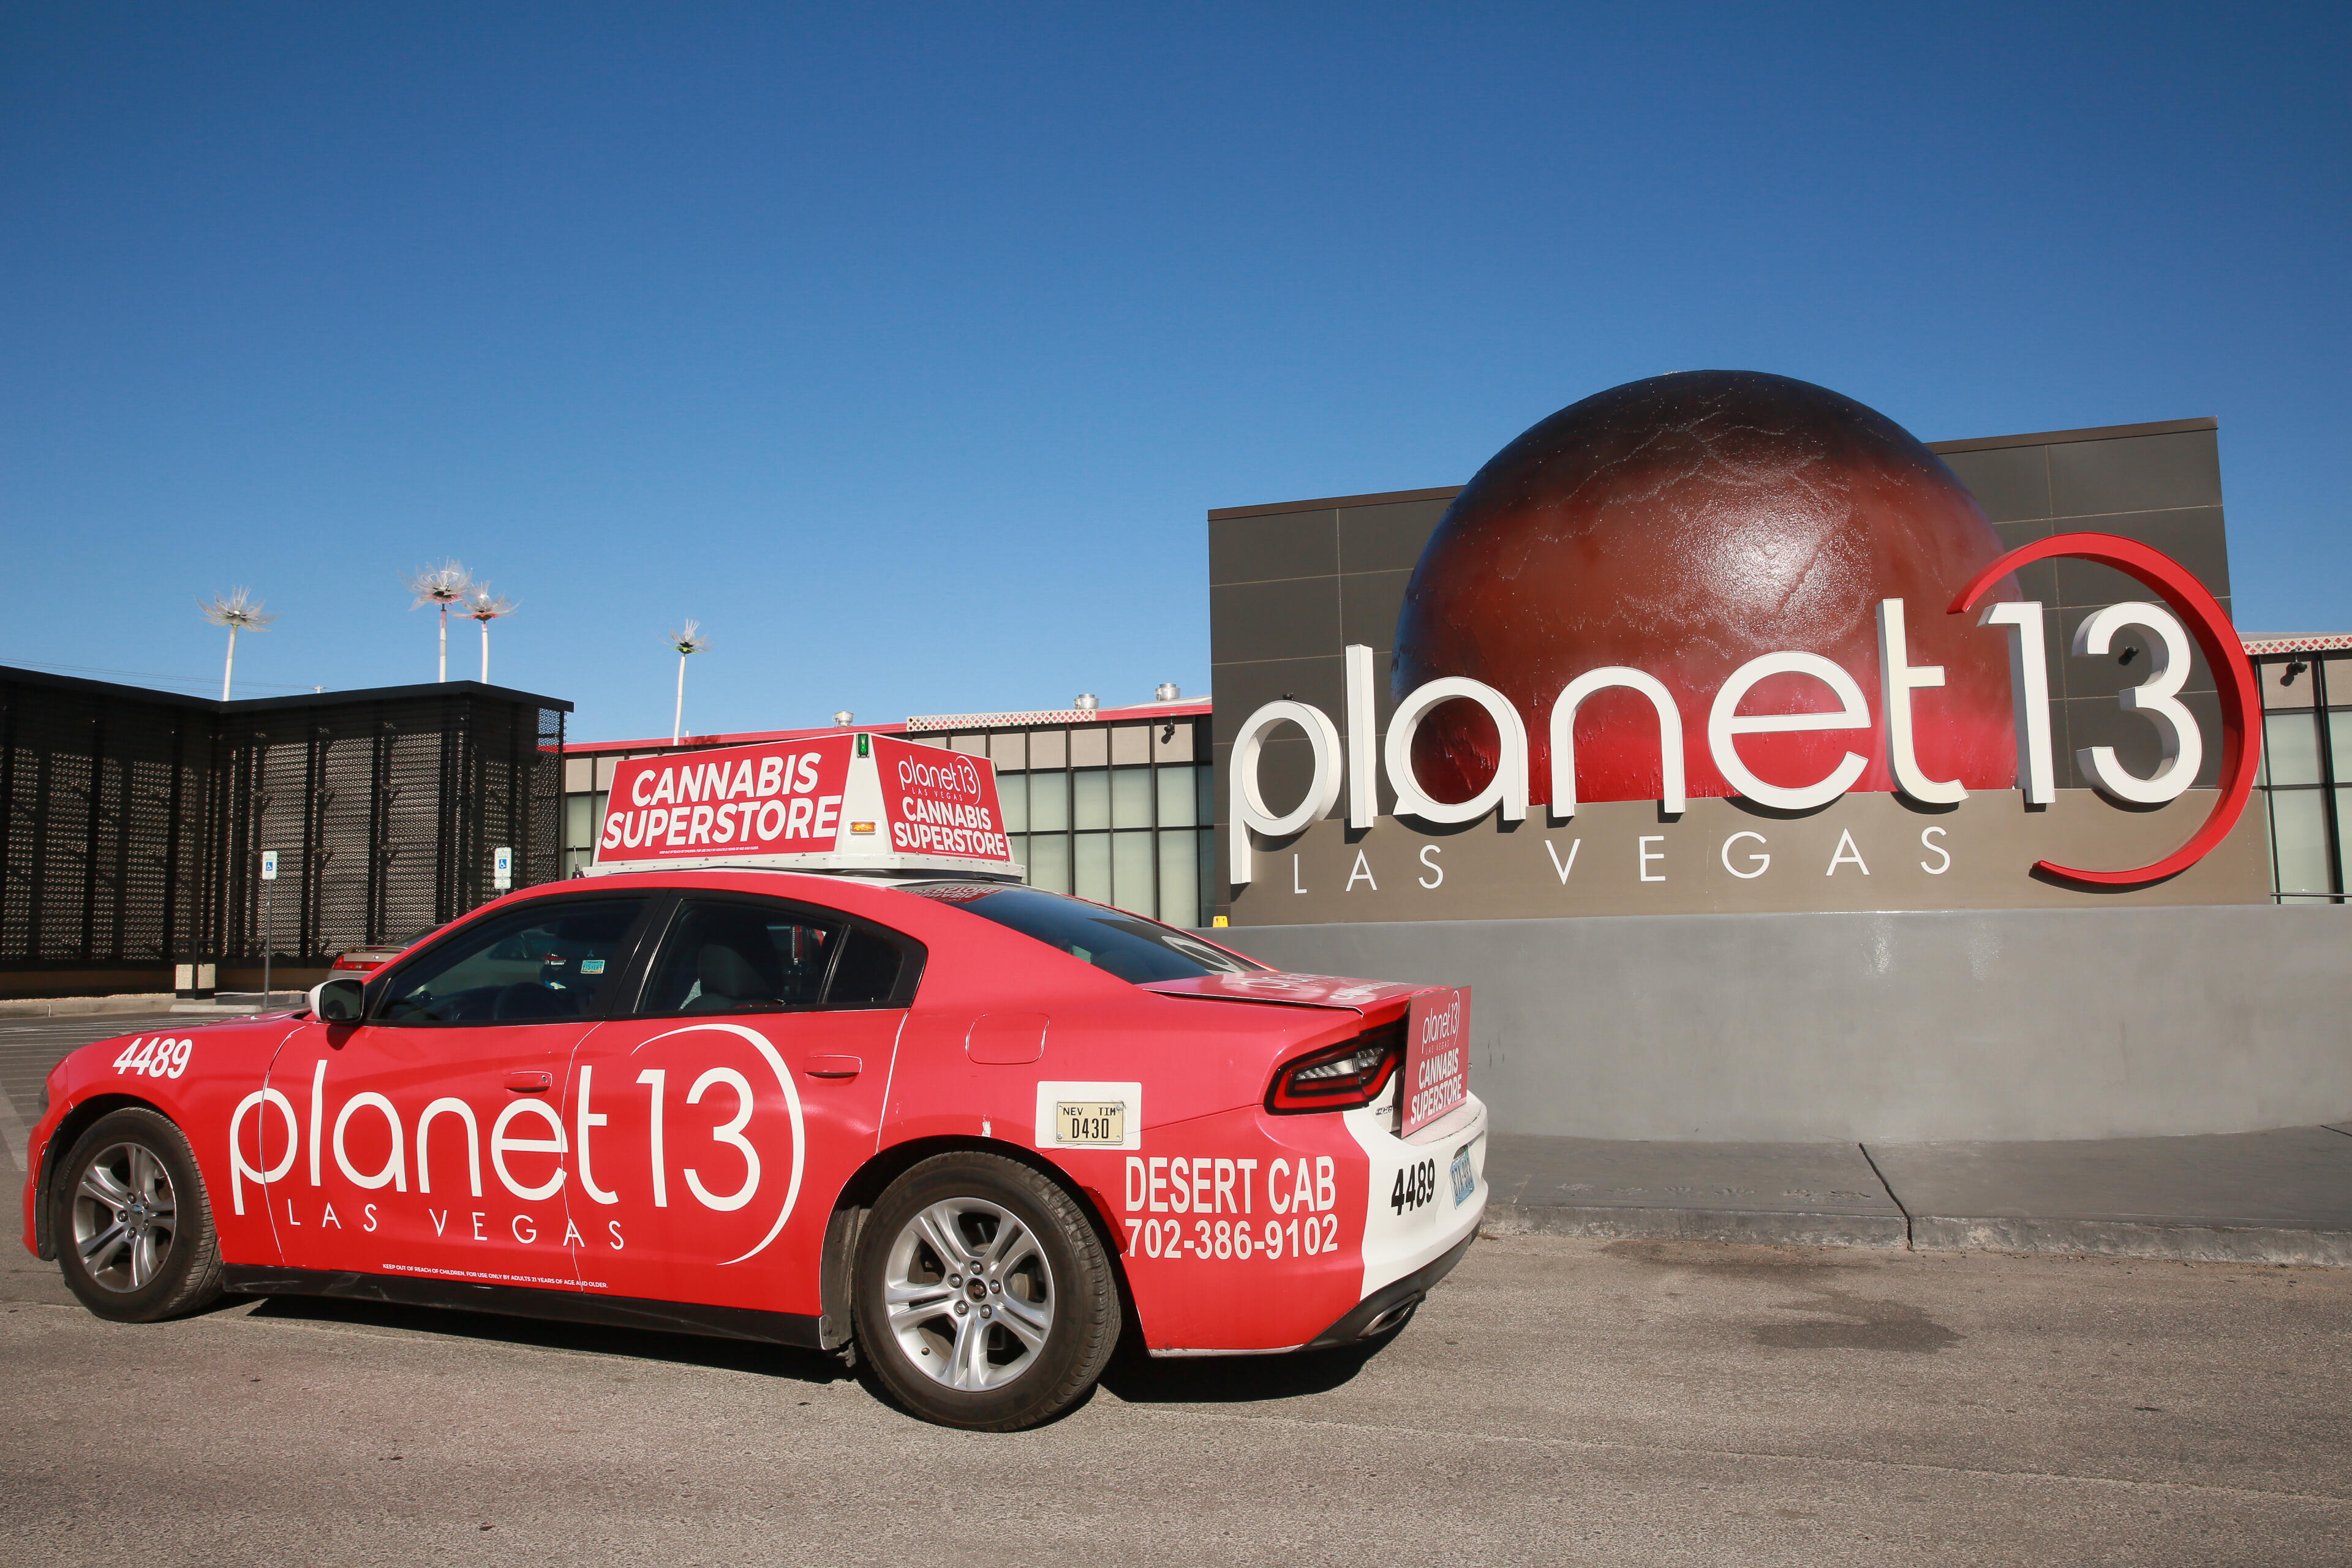 With a total of 115,000 square feet of space, Planet 13 is the largest marijuana dispensary in the world.